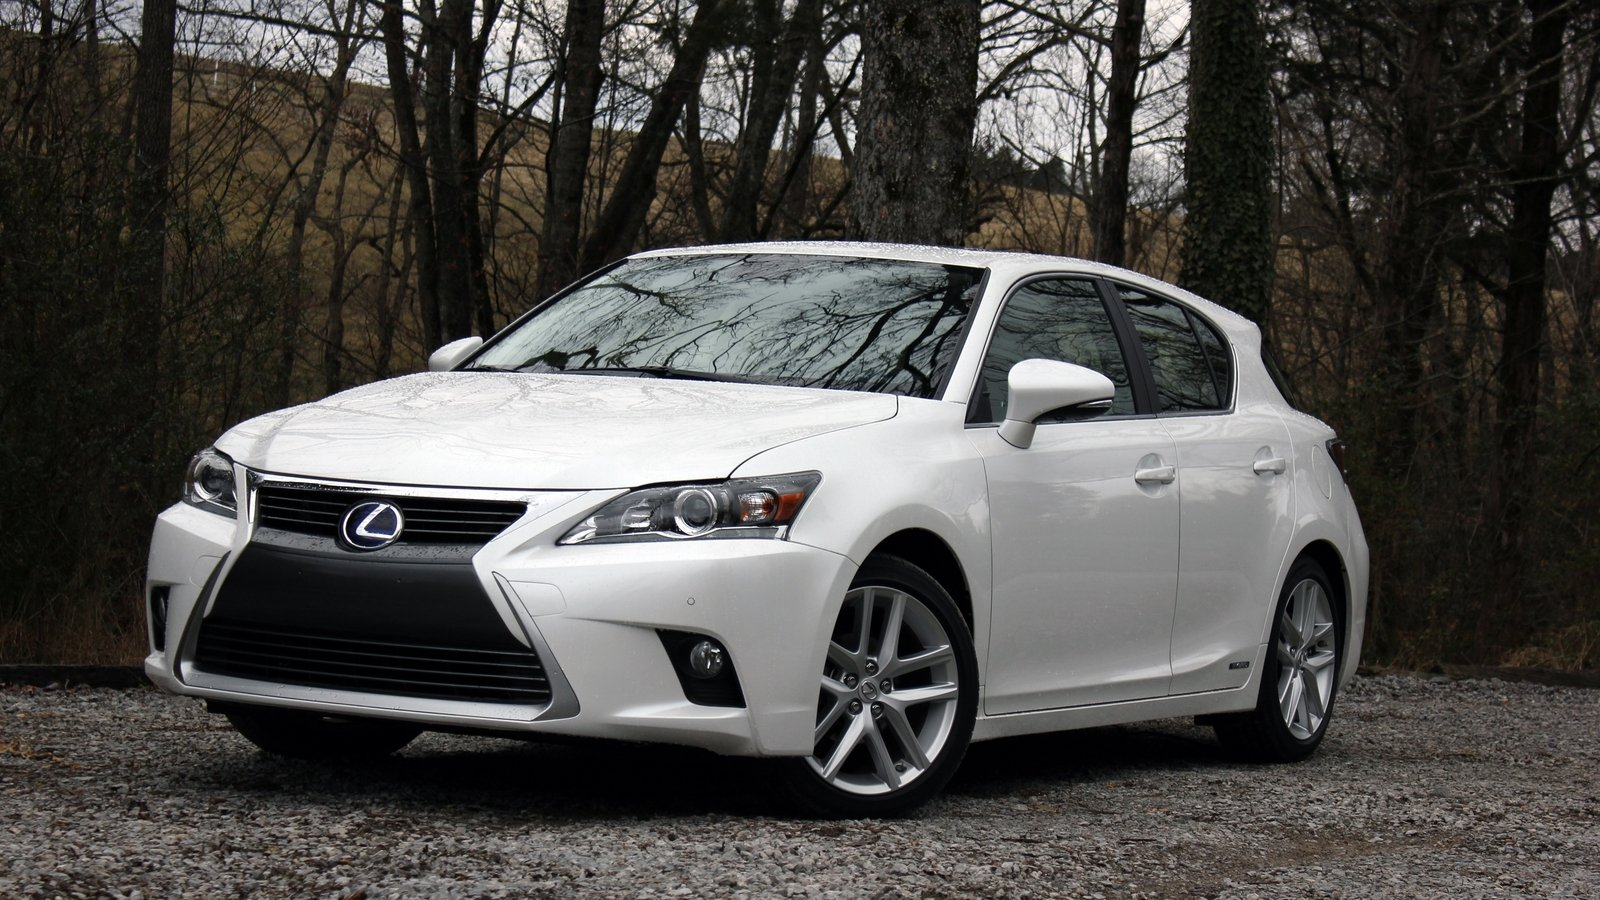 2015 lexus ct 200h driven review top speed. Black Bedroom Furniture Sets. Home Design Ideas